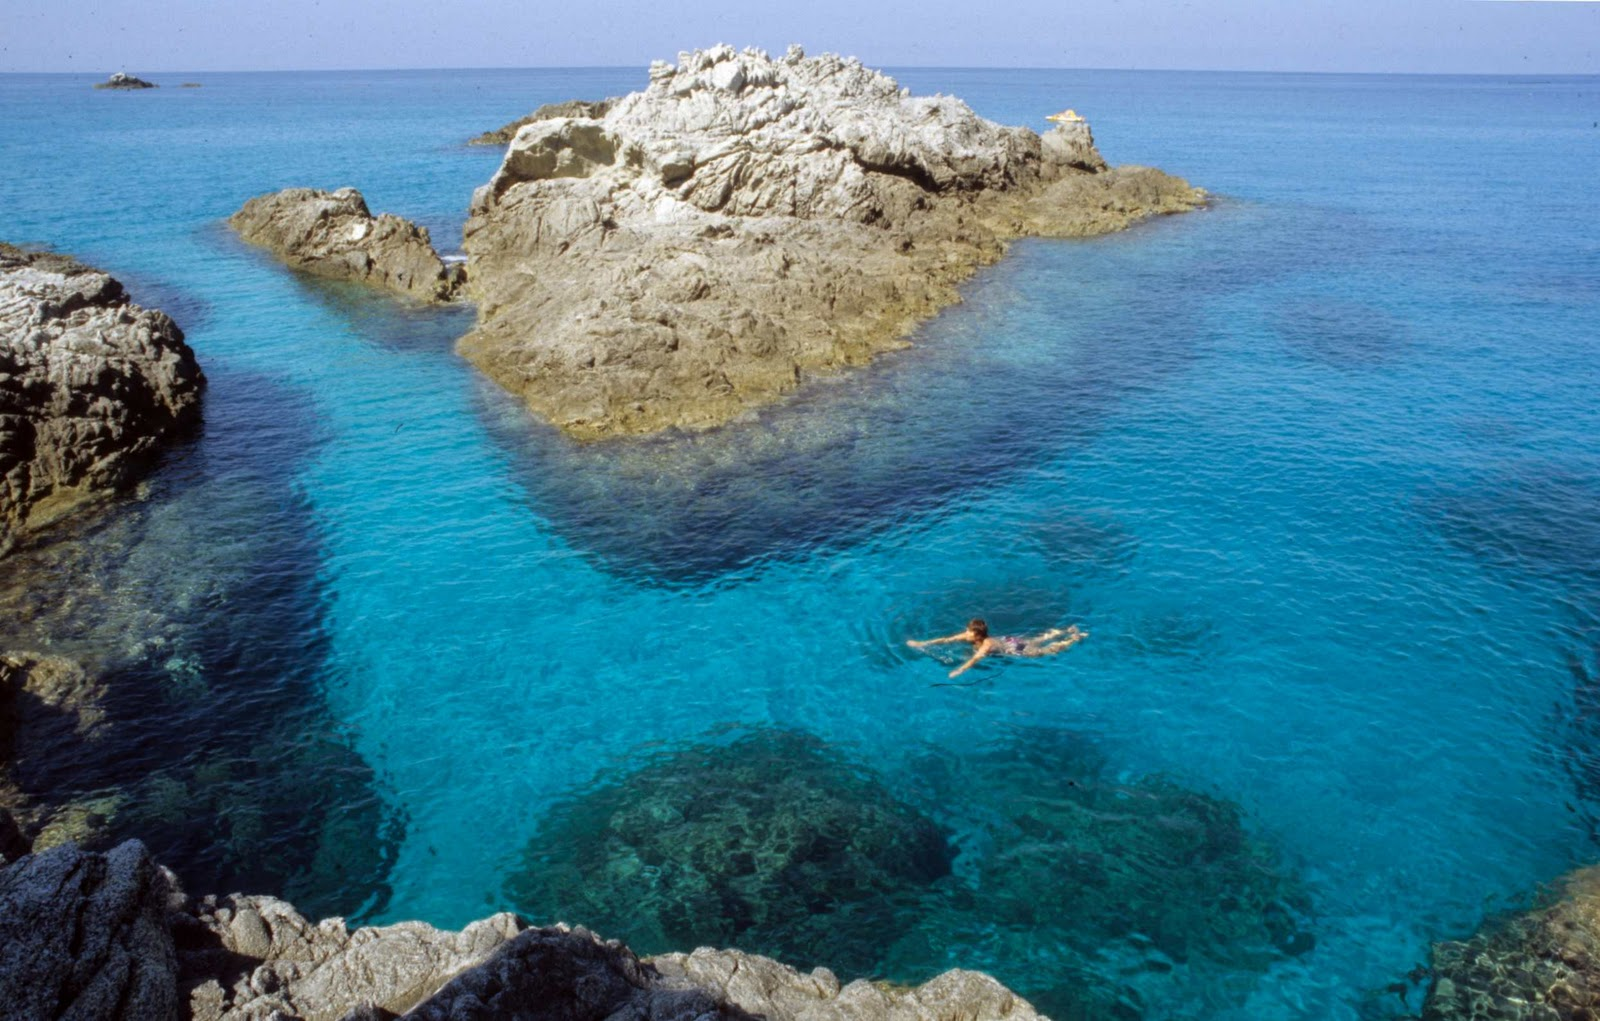 capo dorlando black girls personals Capo d'orlando it's a small town spreading on the omonymous promontory, characterized by a thick deep green vegetation and by cliffs and stacks.